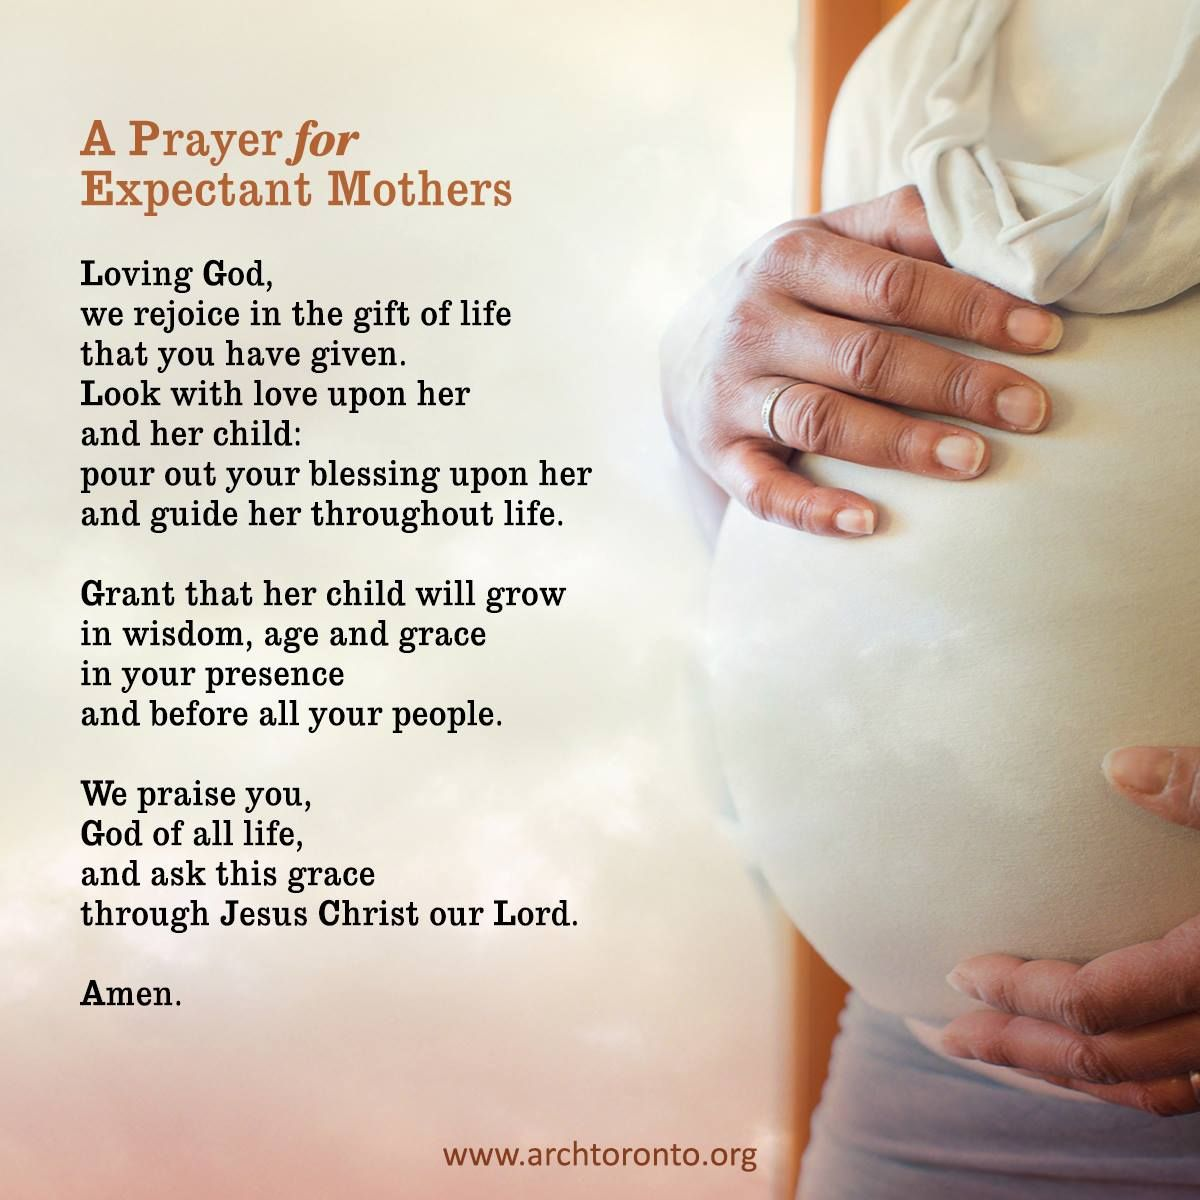 prayer for expectant mothers #catholic #mother #pregnancy